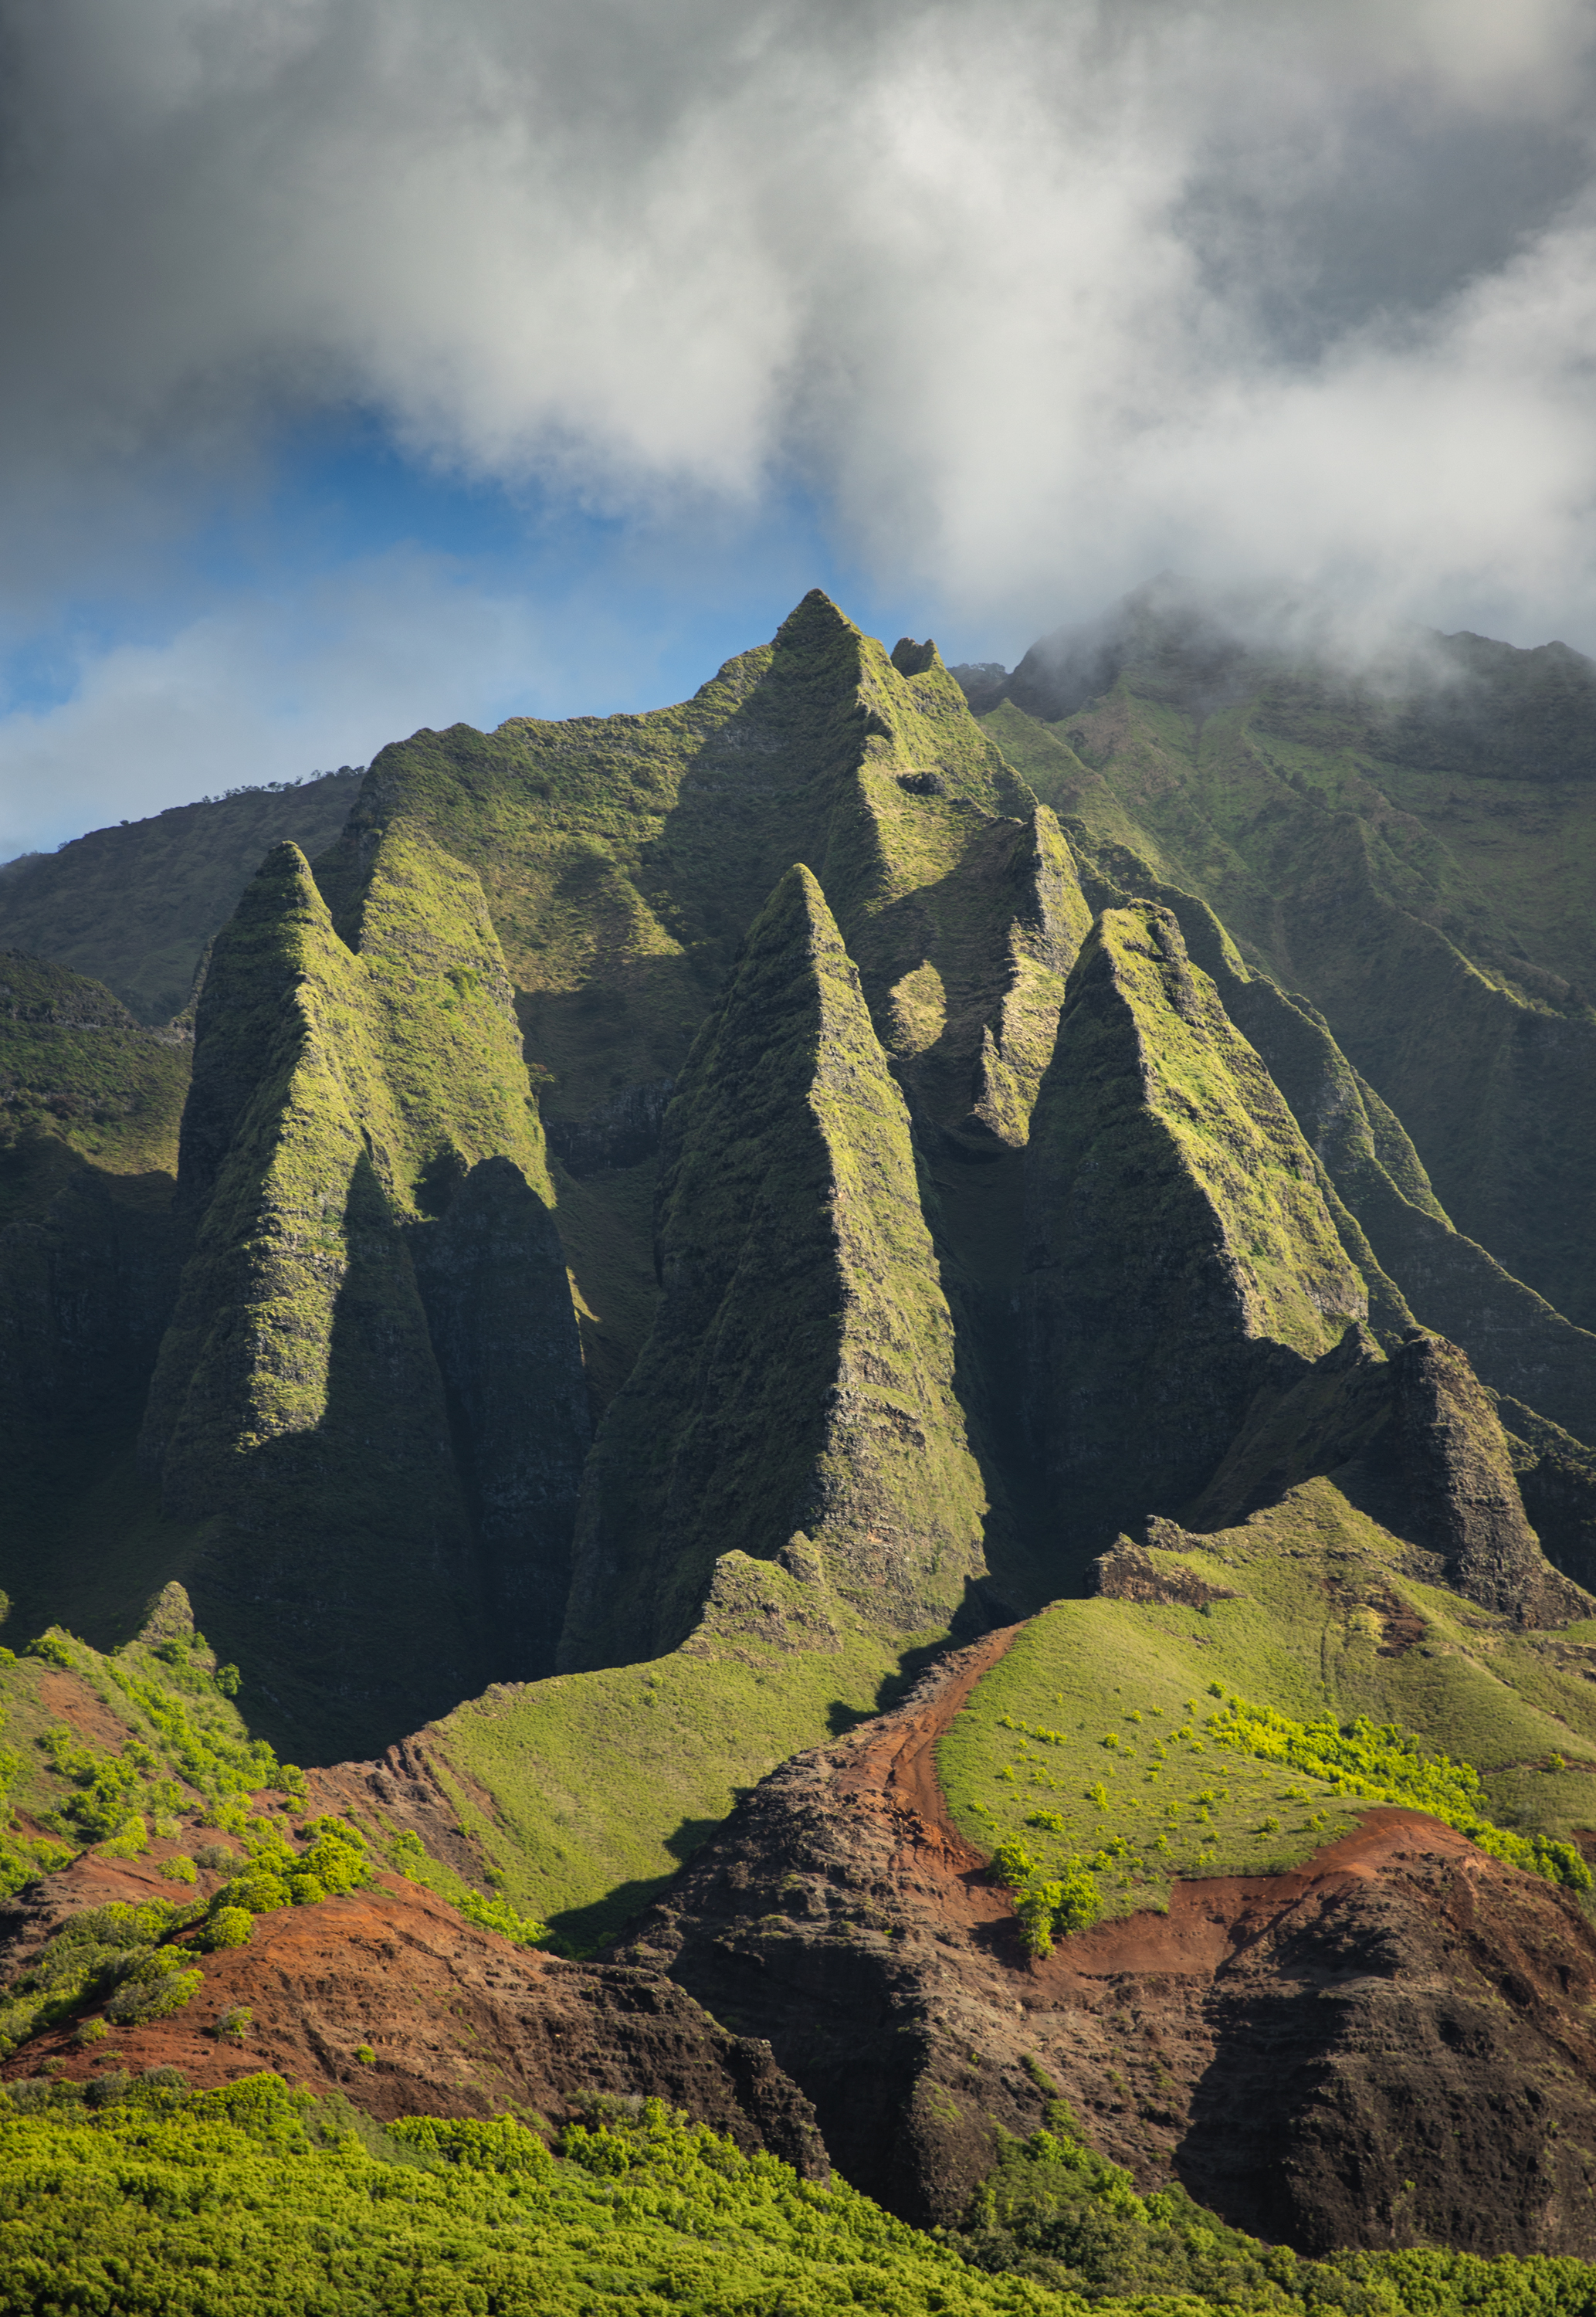 The Cathedrals of Kalalau